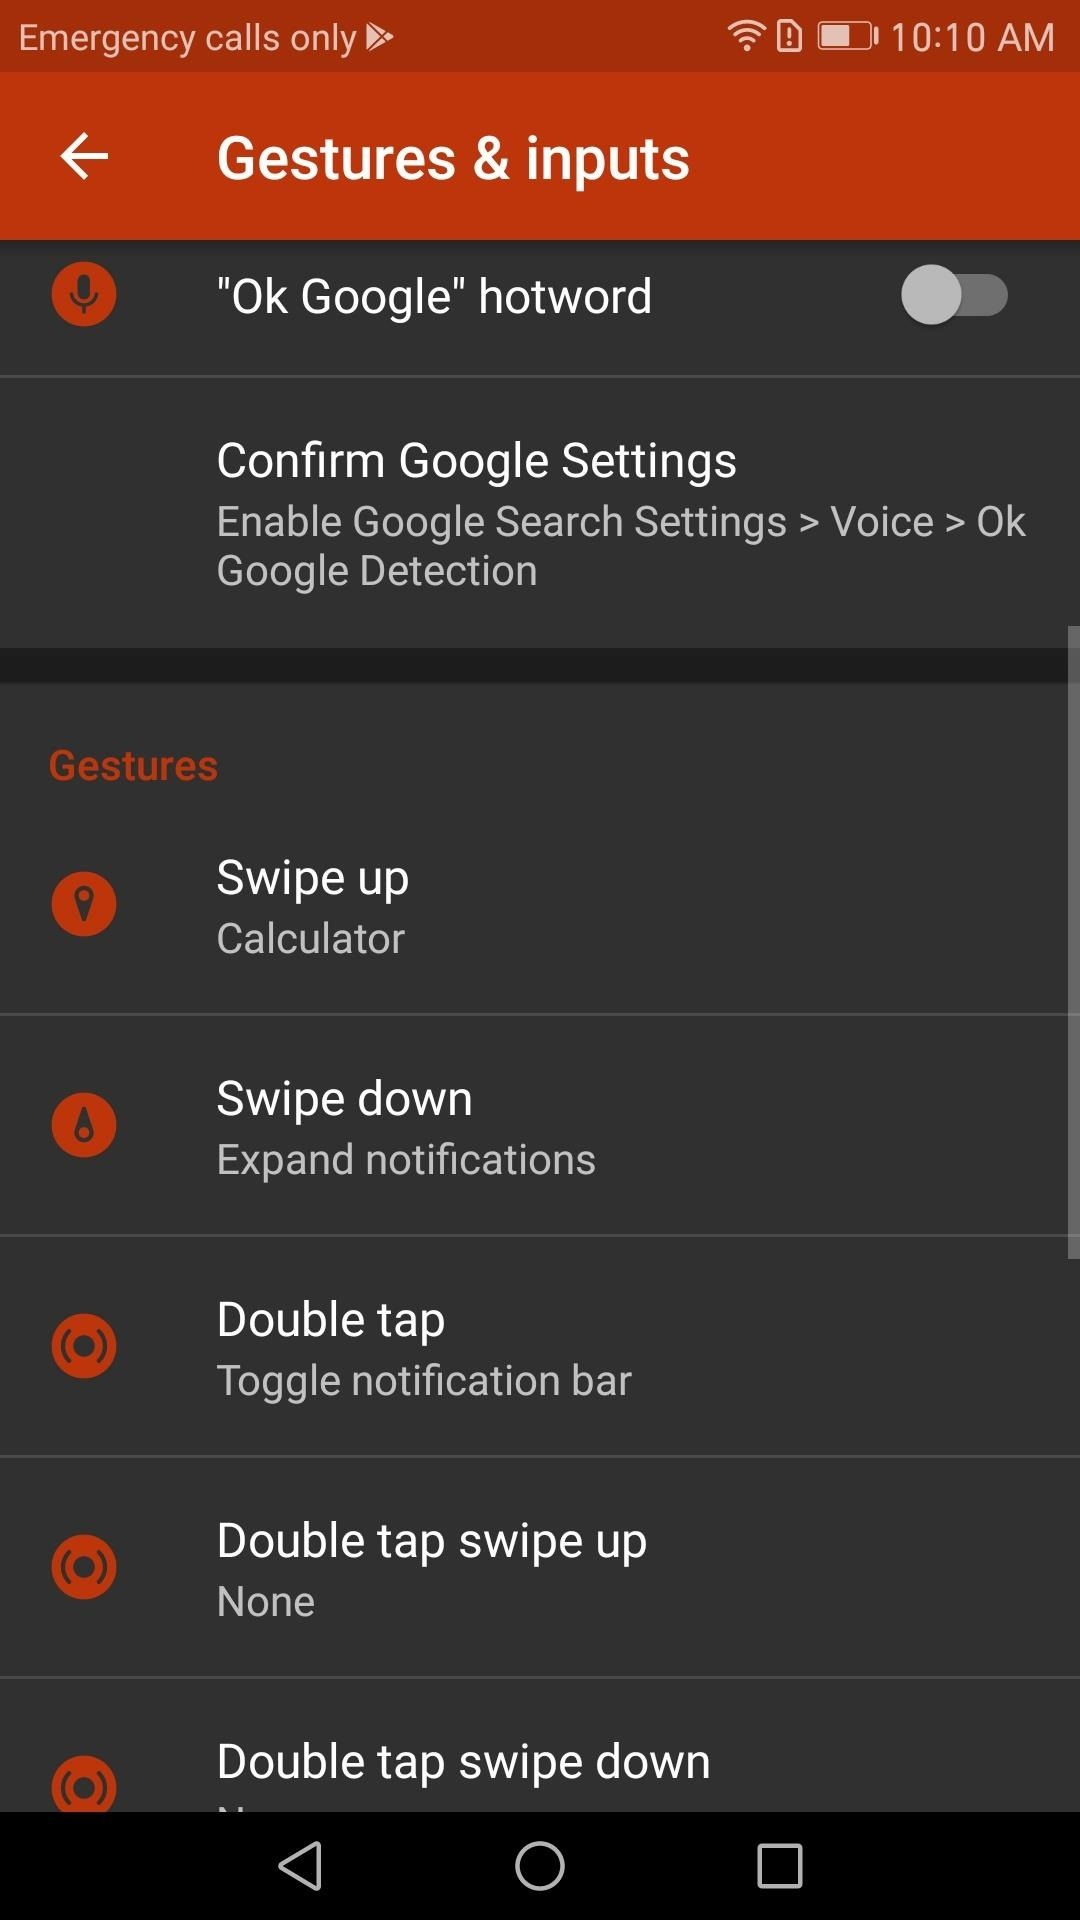 Nova Launcher 101: How to Set Up Home Screen Gestures